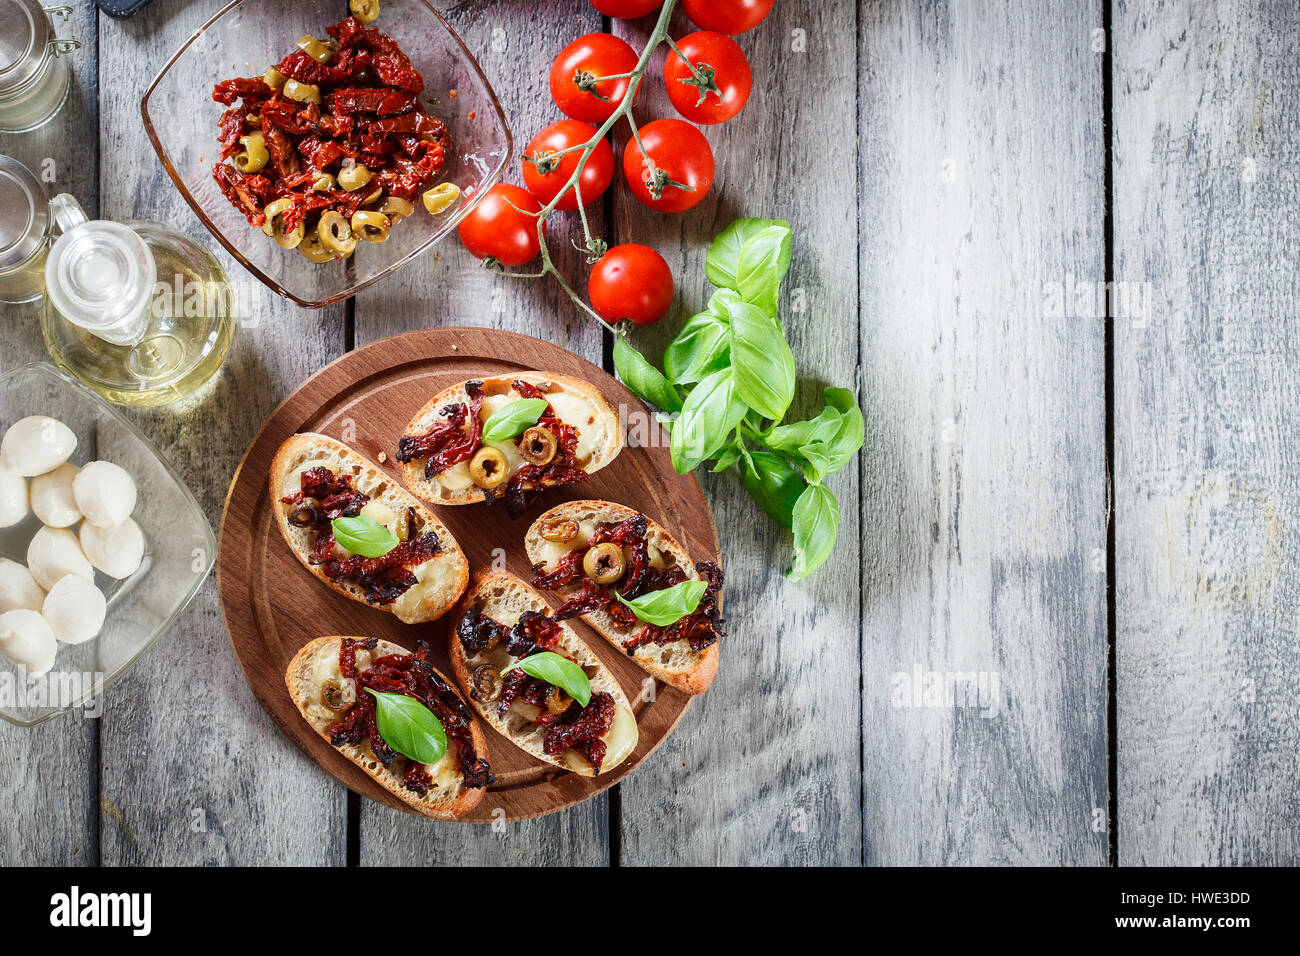 Appetizer bruschetta with sun-dried tomatoes, olives and mozarella. Italian cuisine. Top view - Stock Image